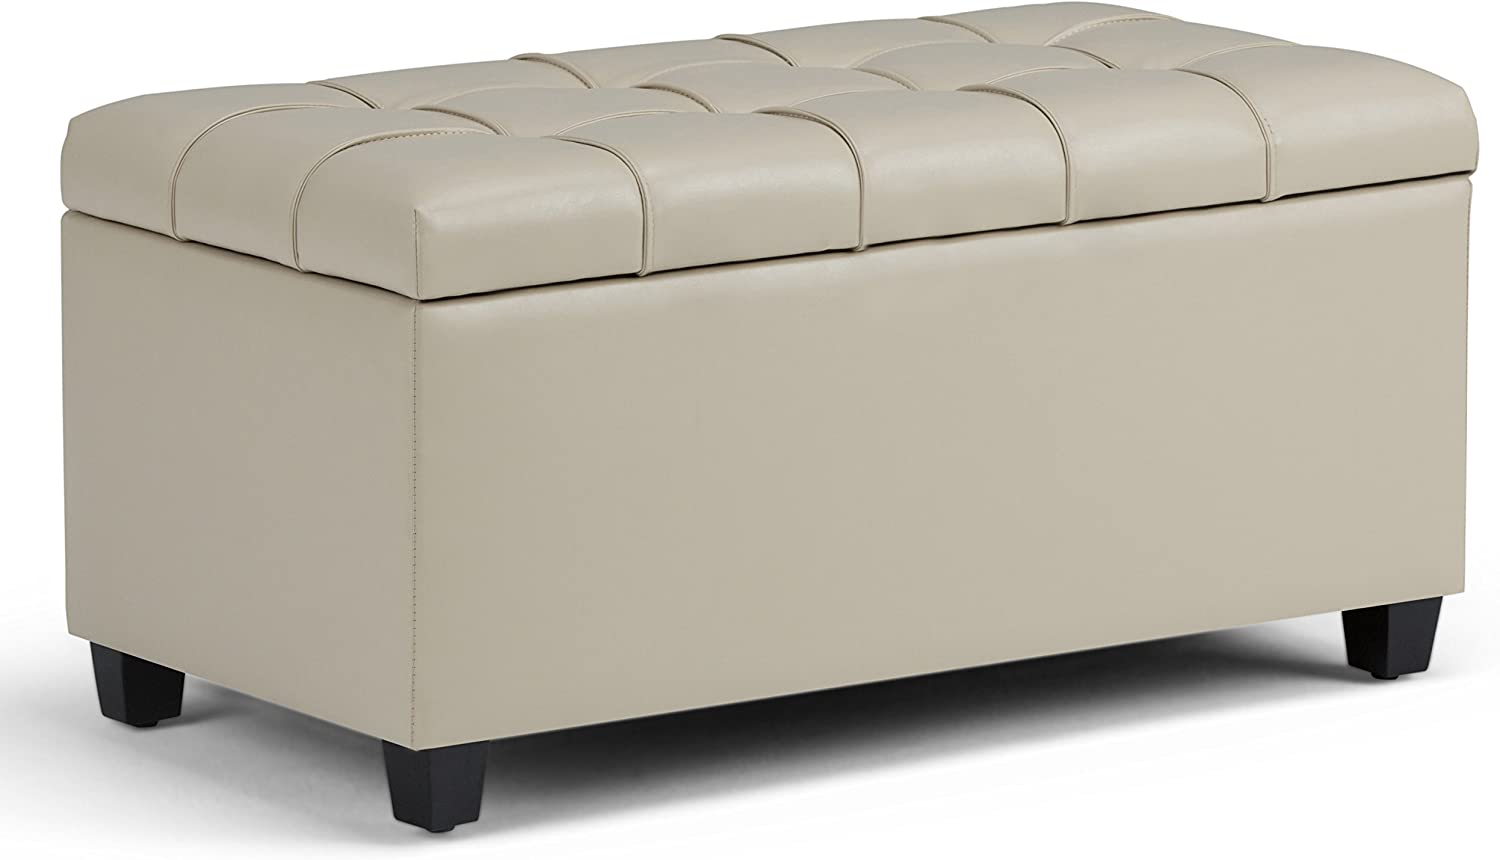 Simpli Home AXCOT-258-CR Sienna 34 inch Wide Traditional Rectangle Storage Ottoman Bench in Satin Cream Faux Leather